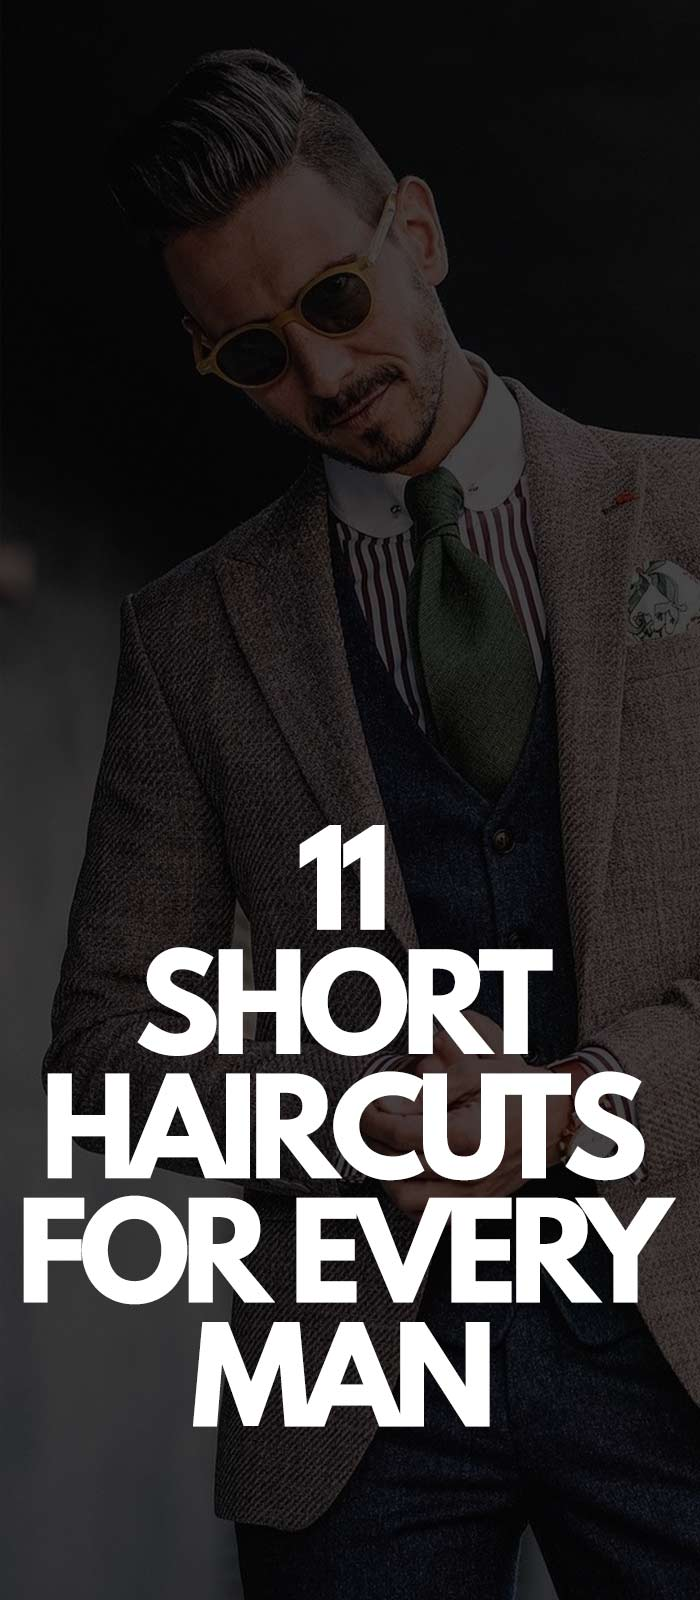 11-Short-Haircuts-For-Every-Man